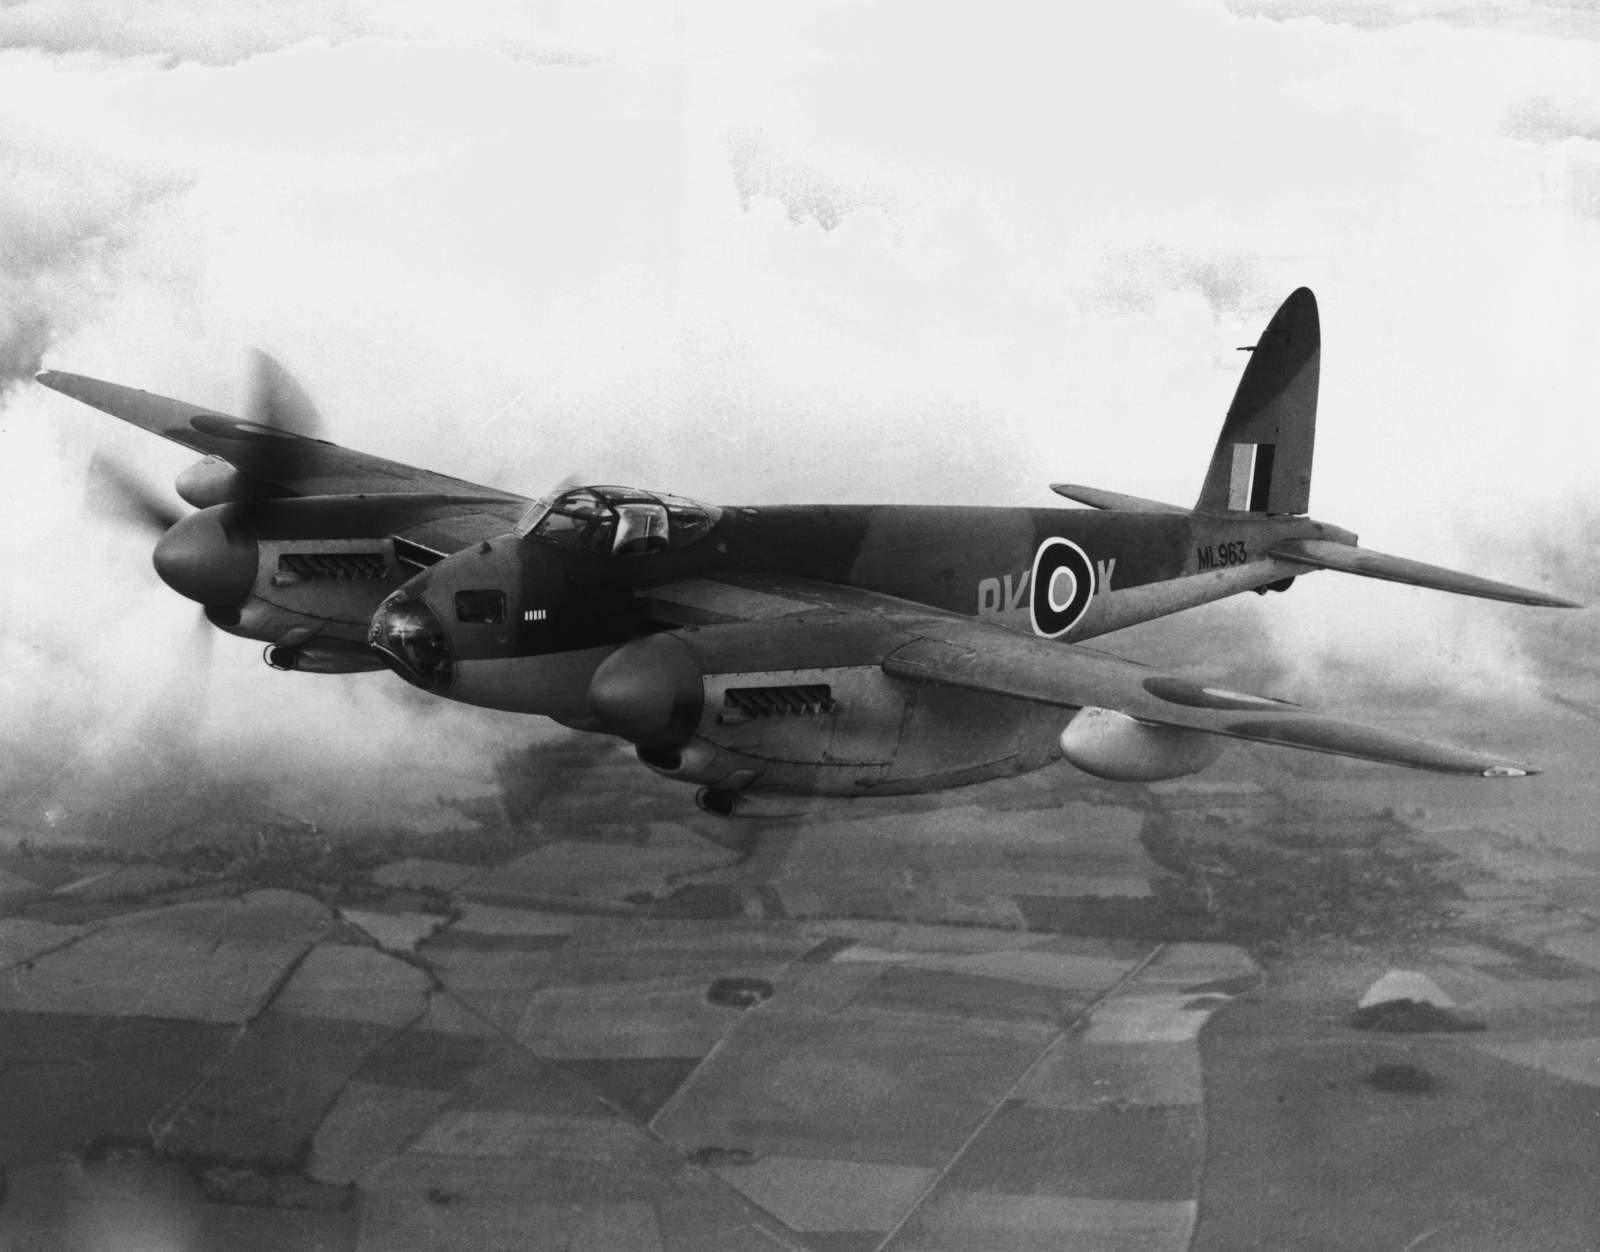 Fastest Plane In The World >> Lost blueprints of rare and unseen WW2 Mosquito bombers discovered